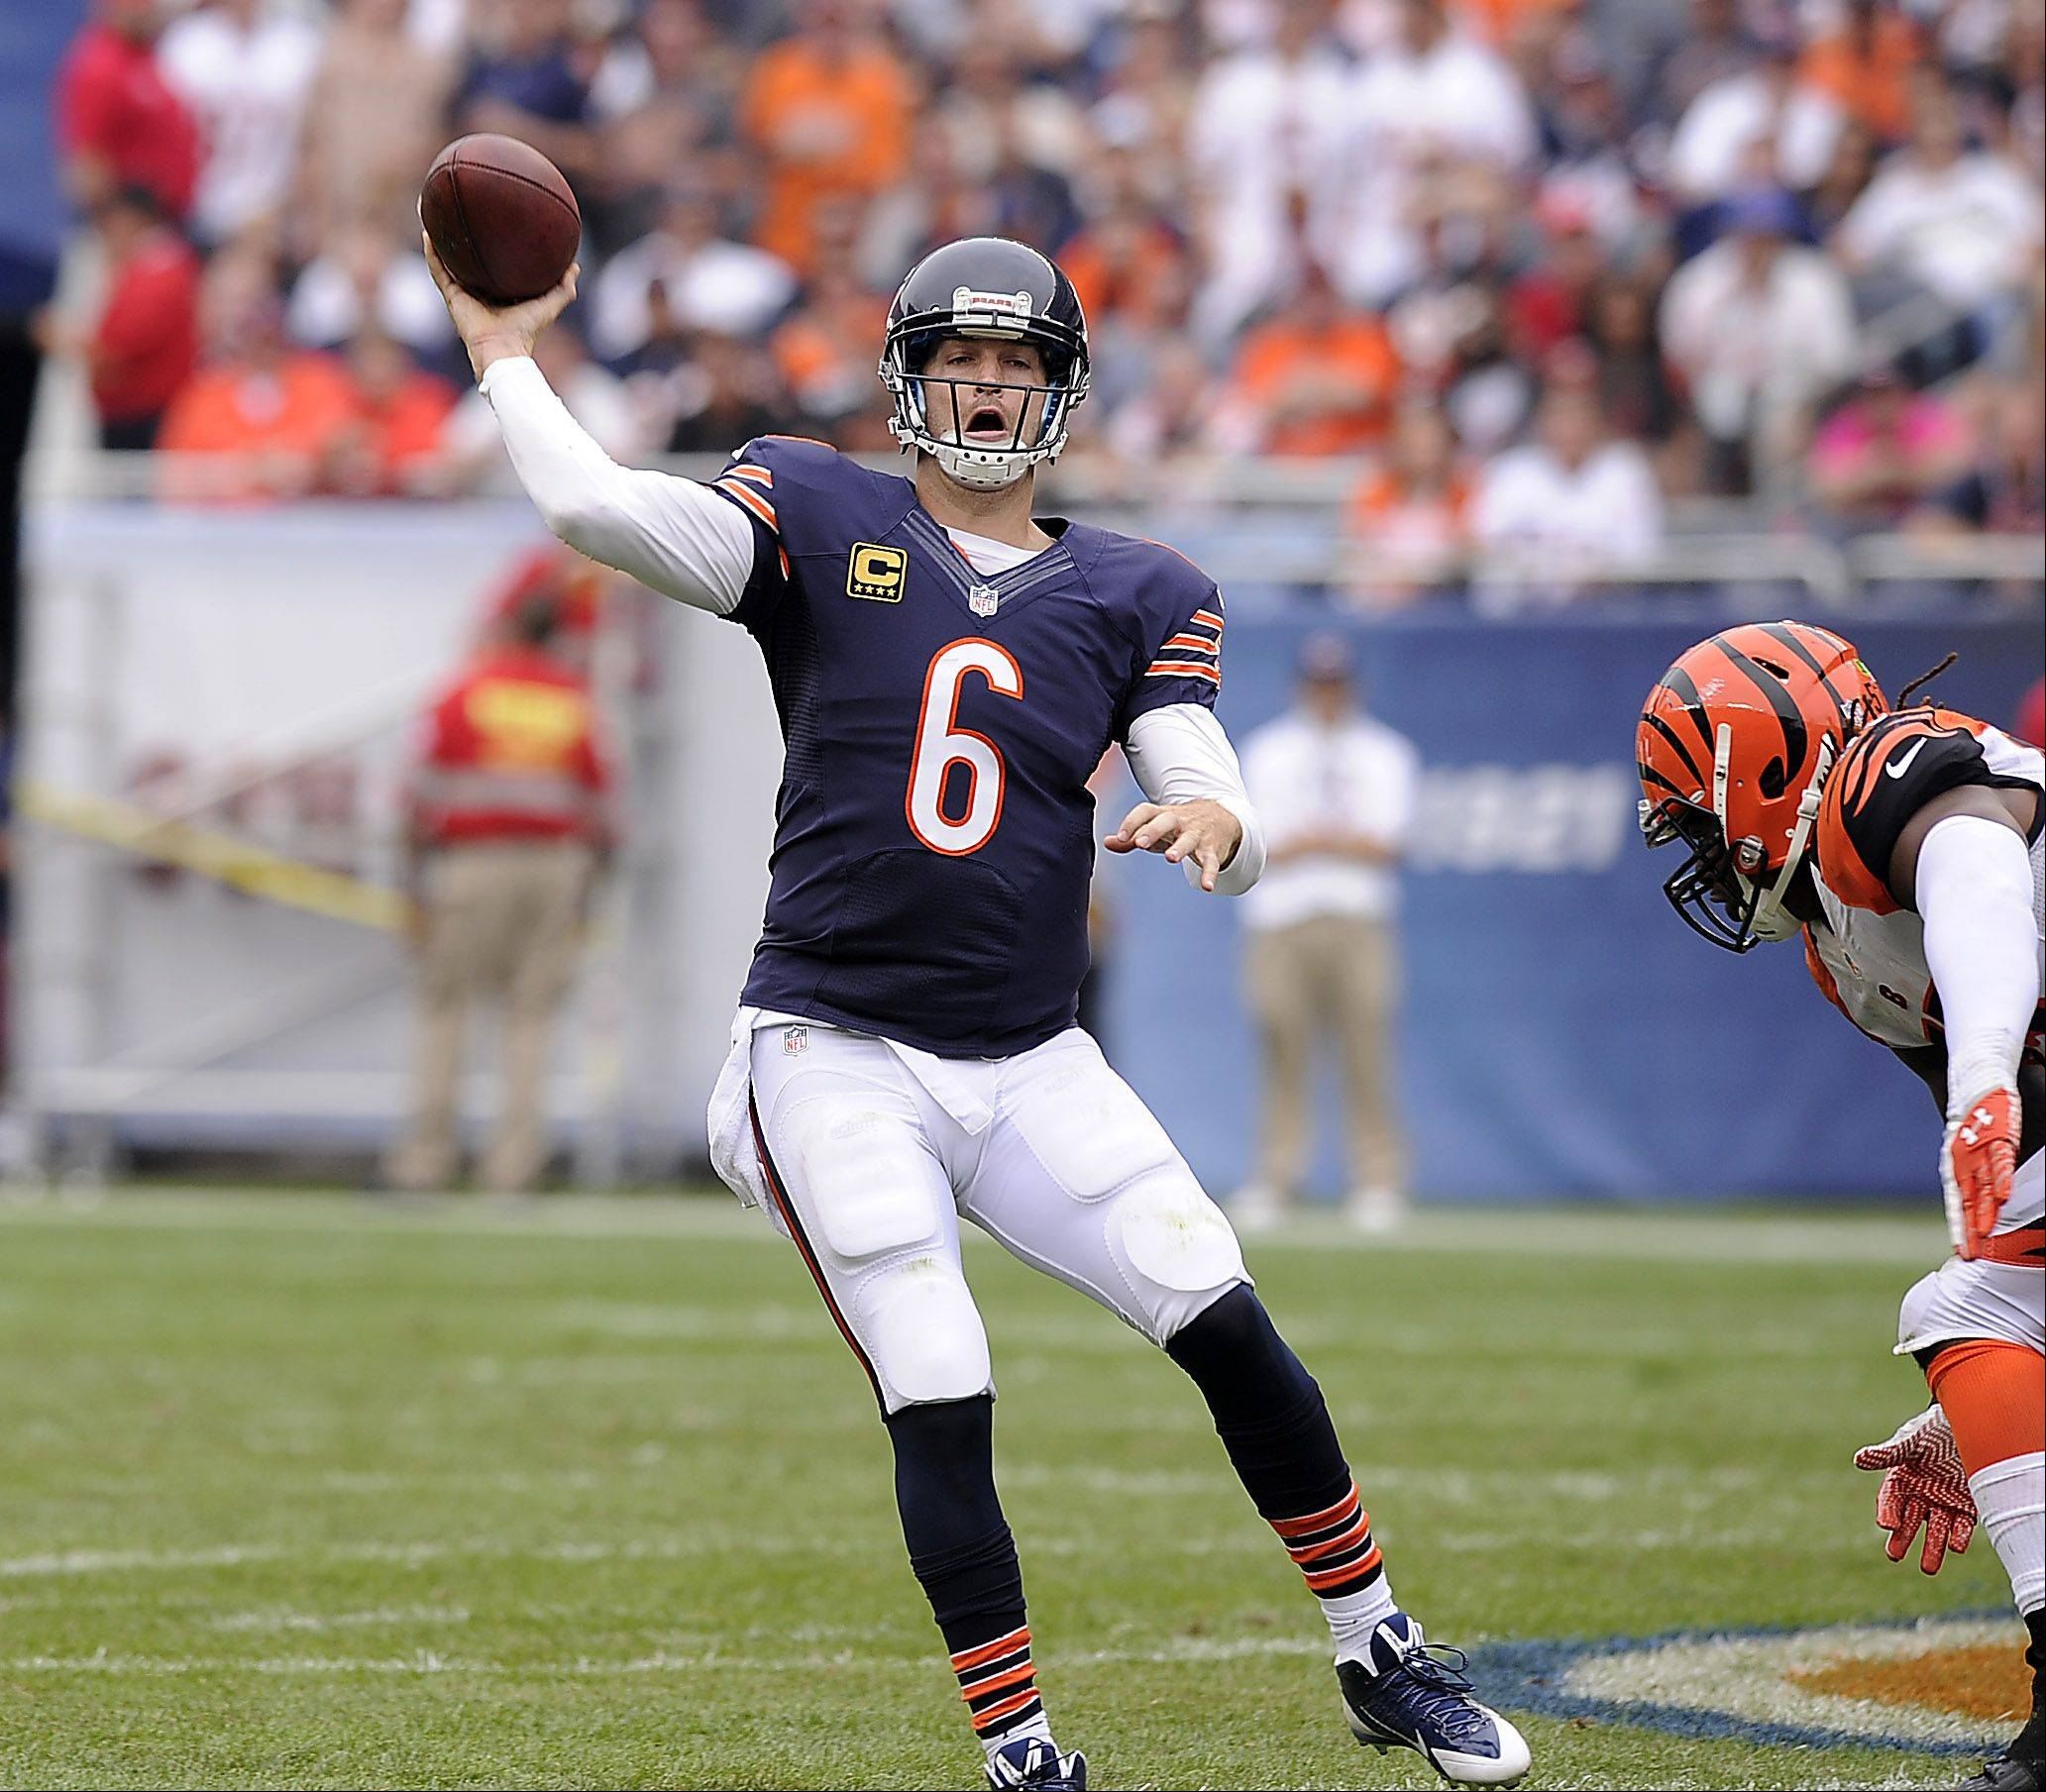 Chicago Bears quarterback Jay Cutler on the run looks downfield for a receiver in the second quarter in the season opener against the Cincinnati Bengals at Soldier Field in Chicago on Sunday.